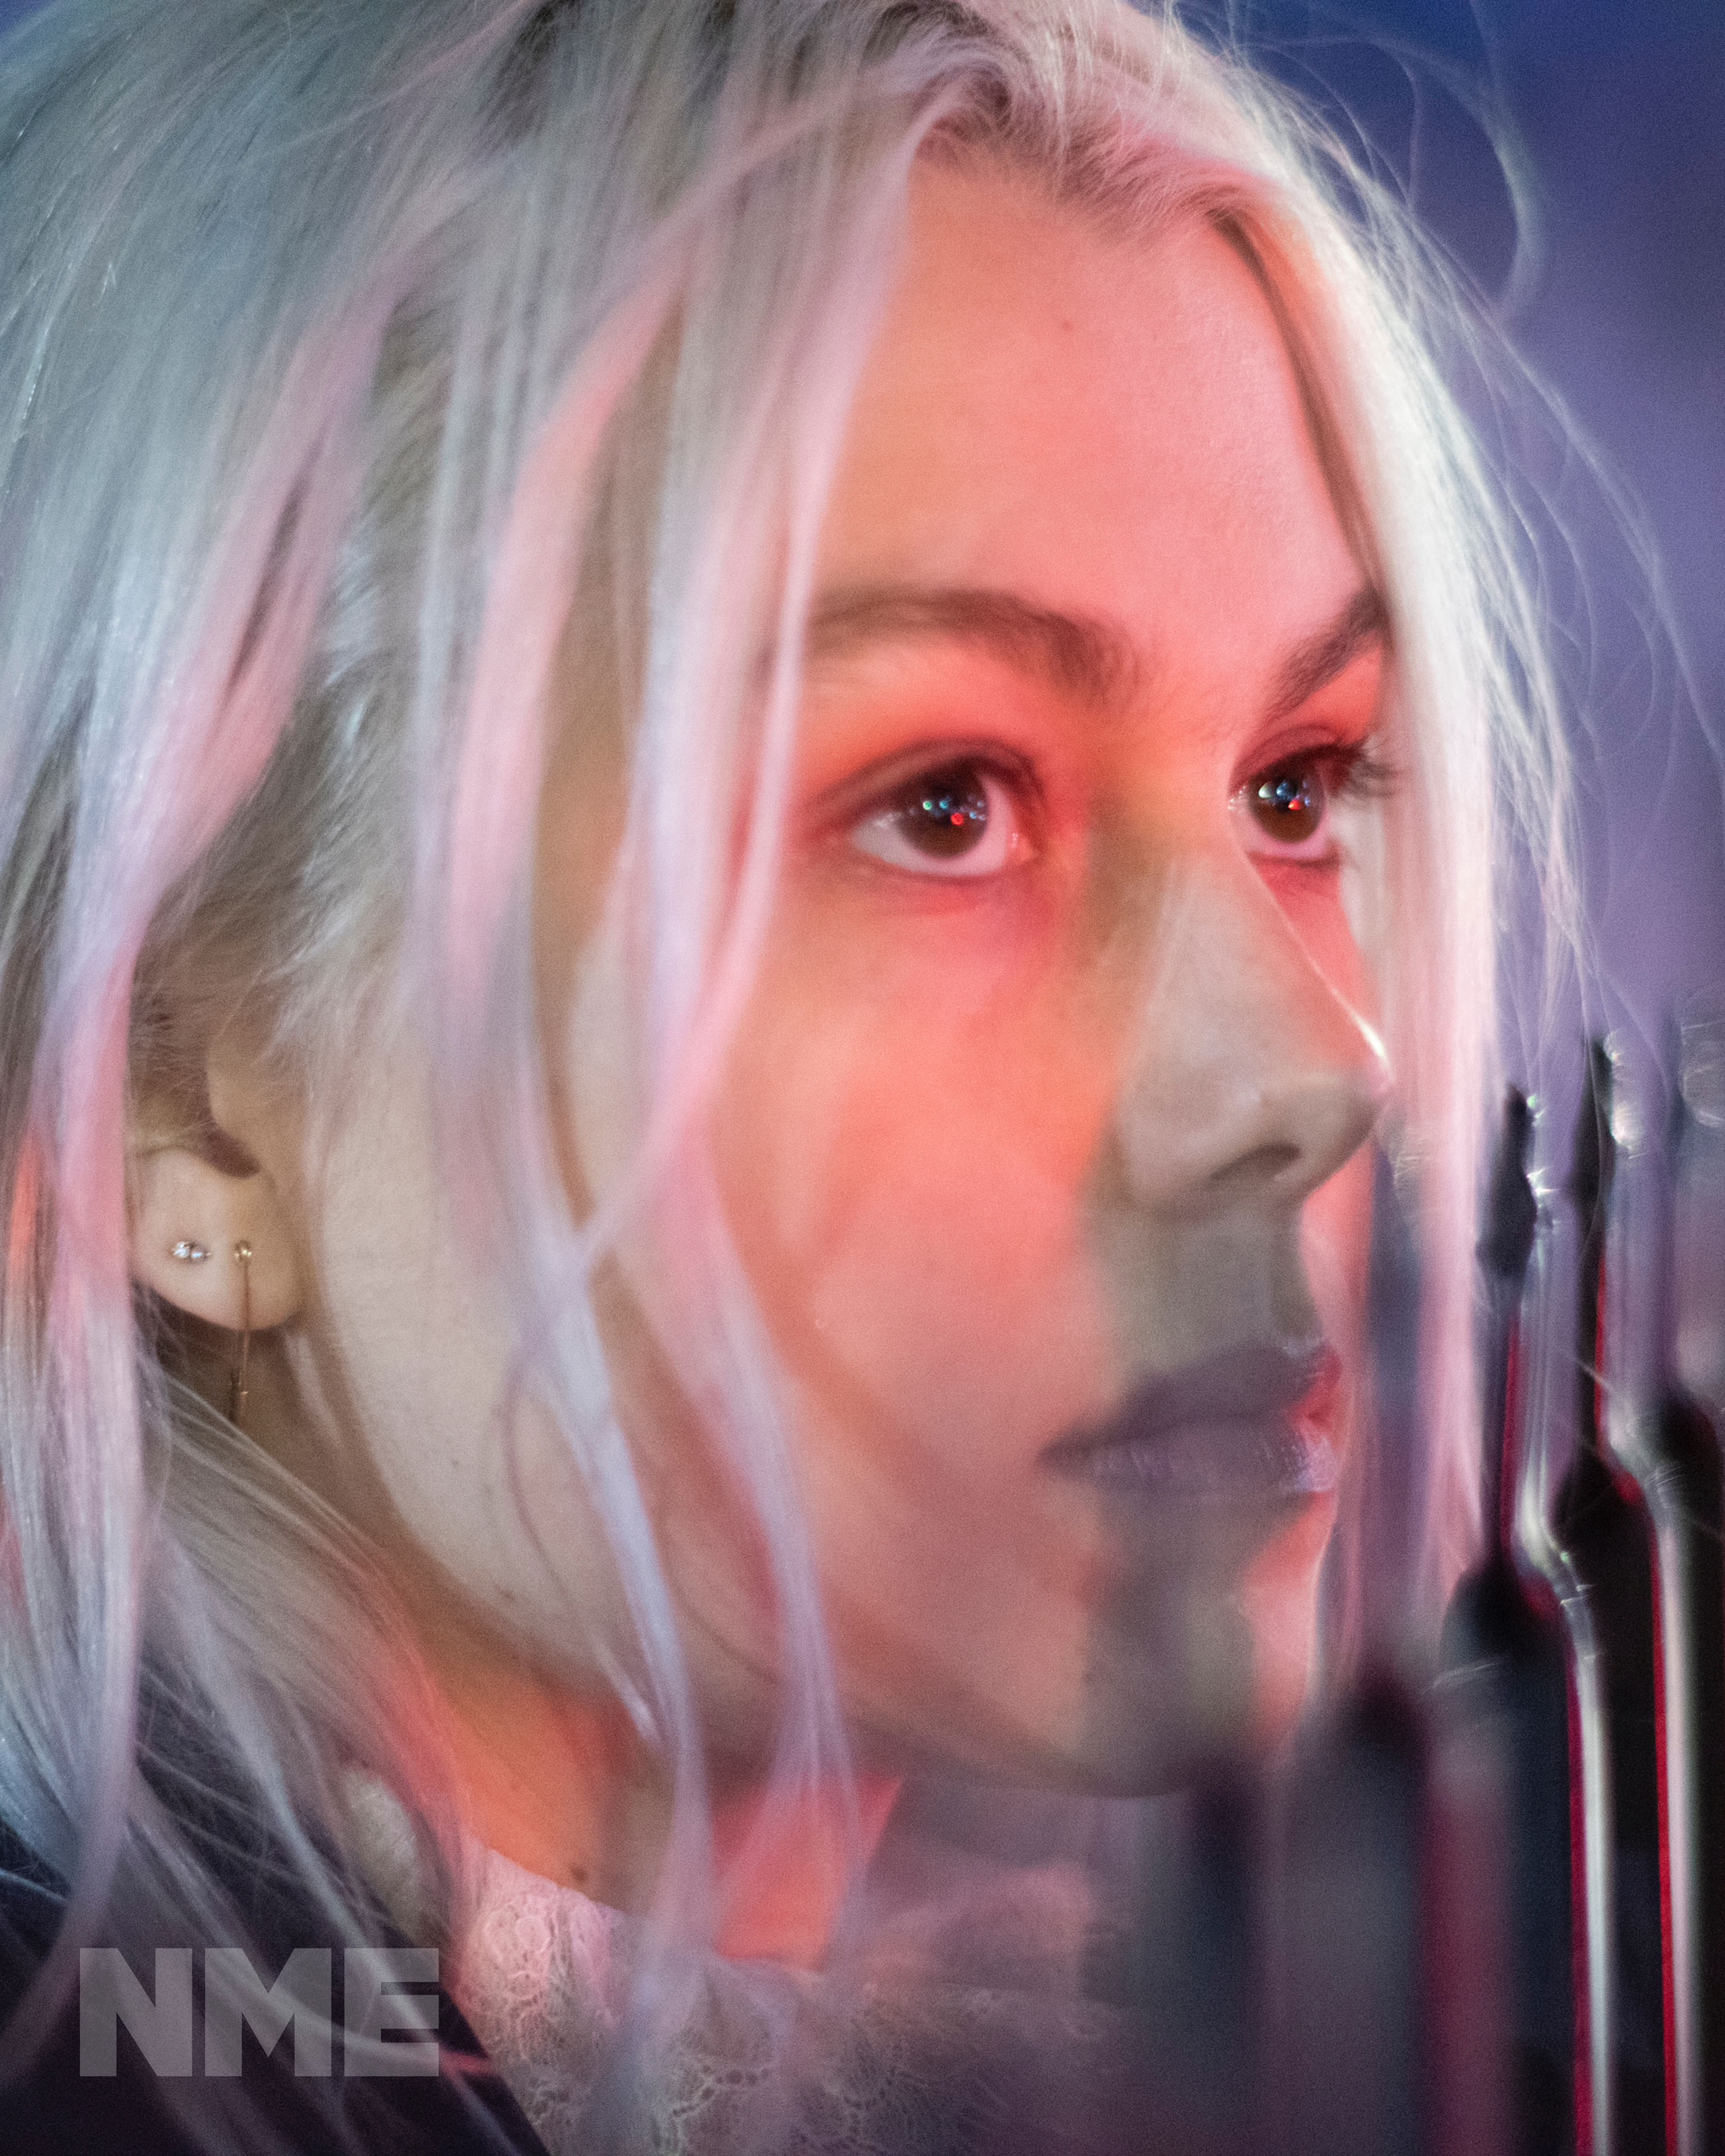 phoebe bridgers nme cover interview